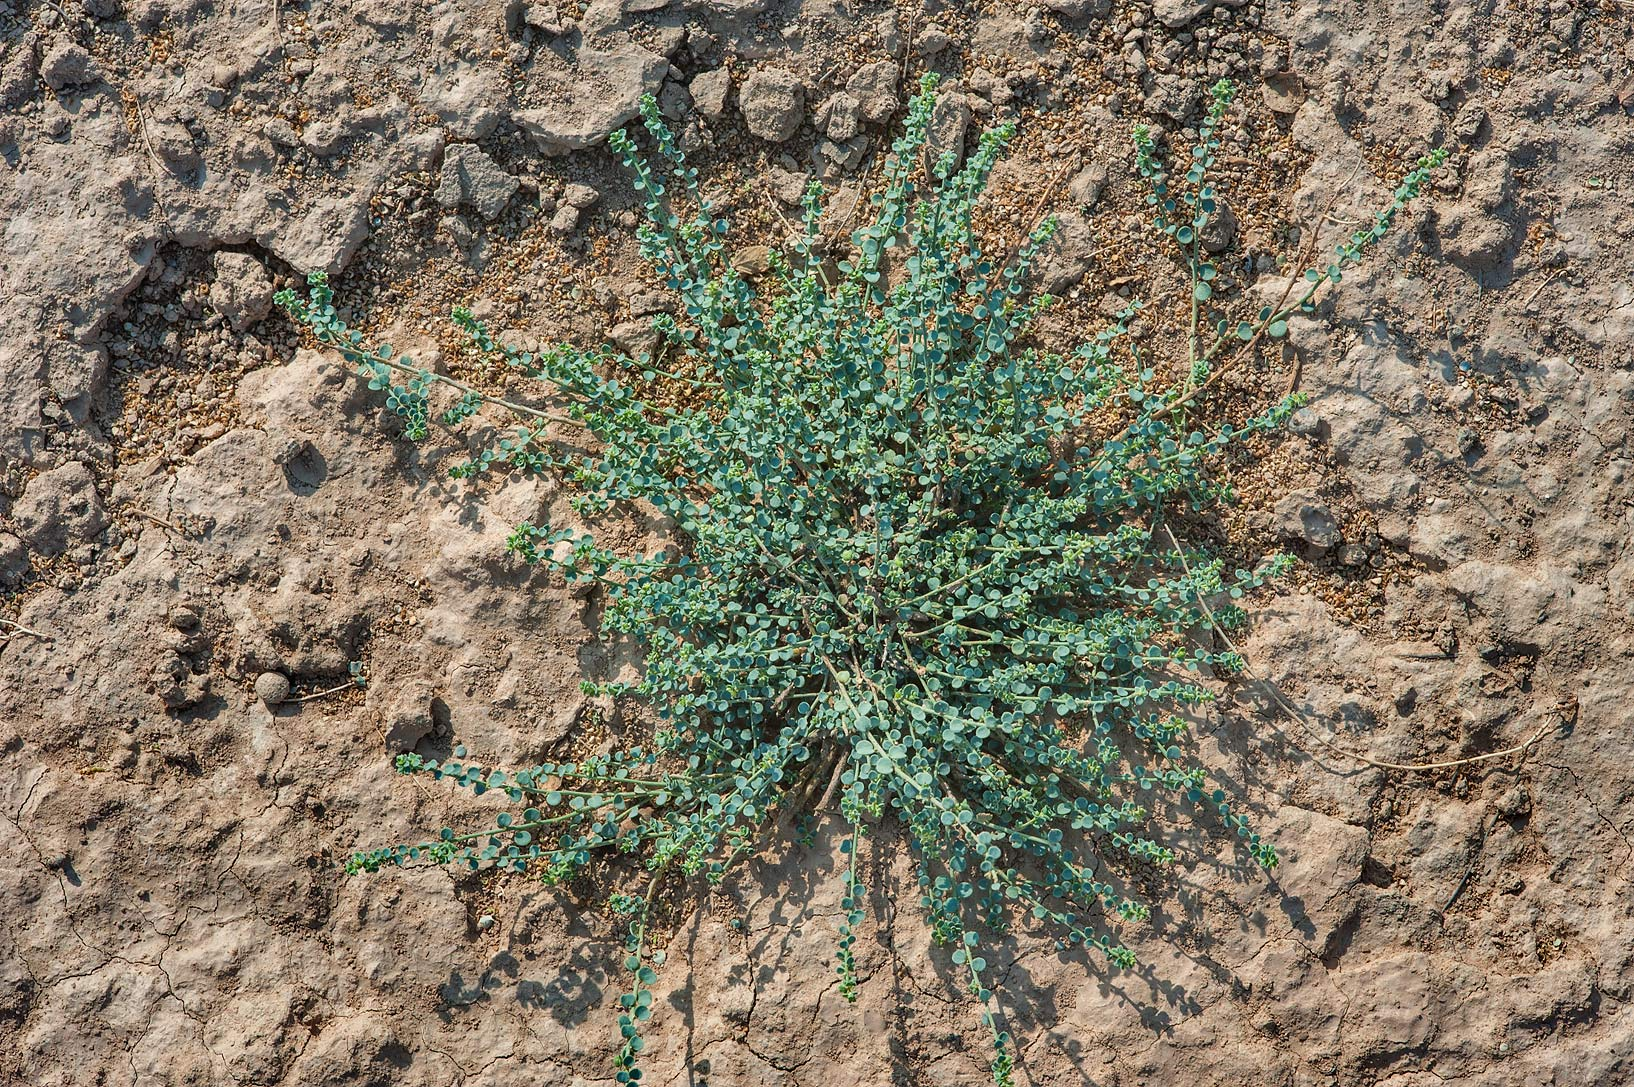 Desert plant Andrachne telephioides in a silty...Nuaman (Numan) in north-western Qatar